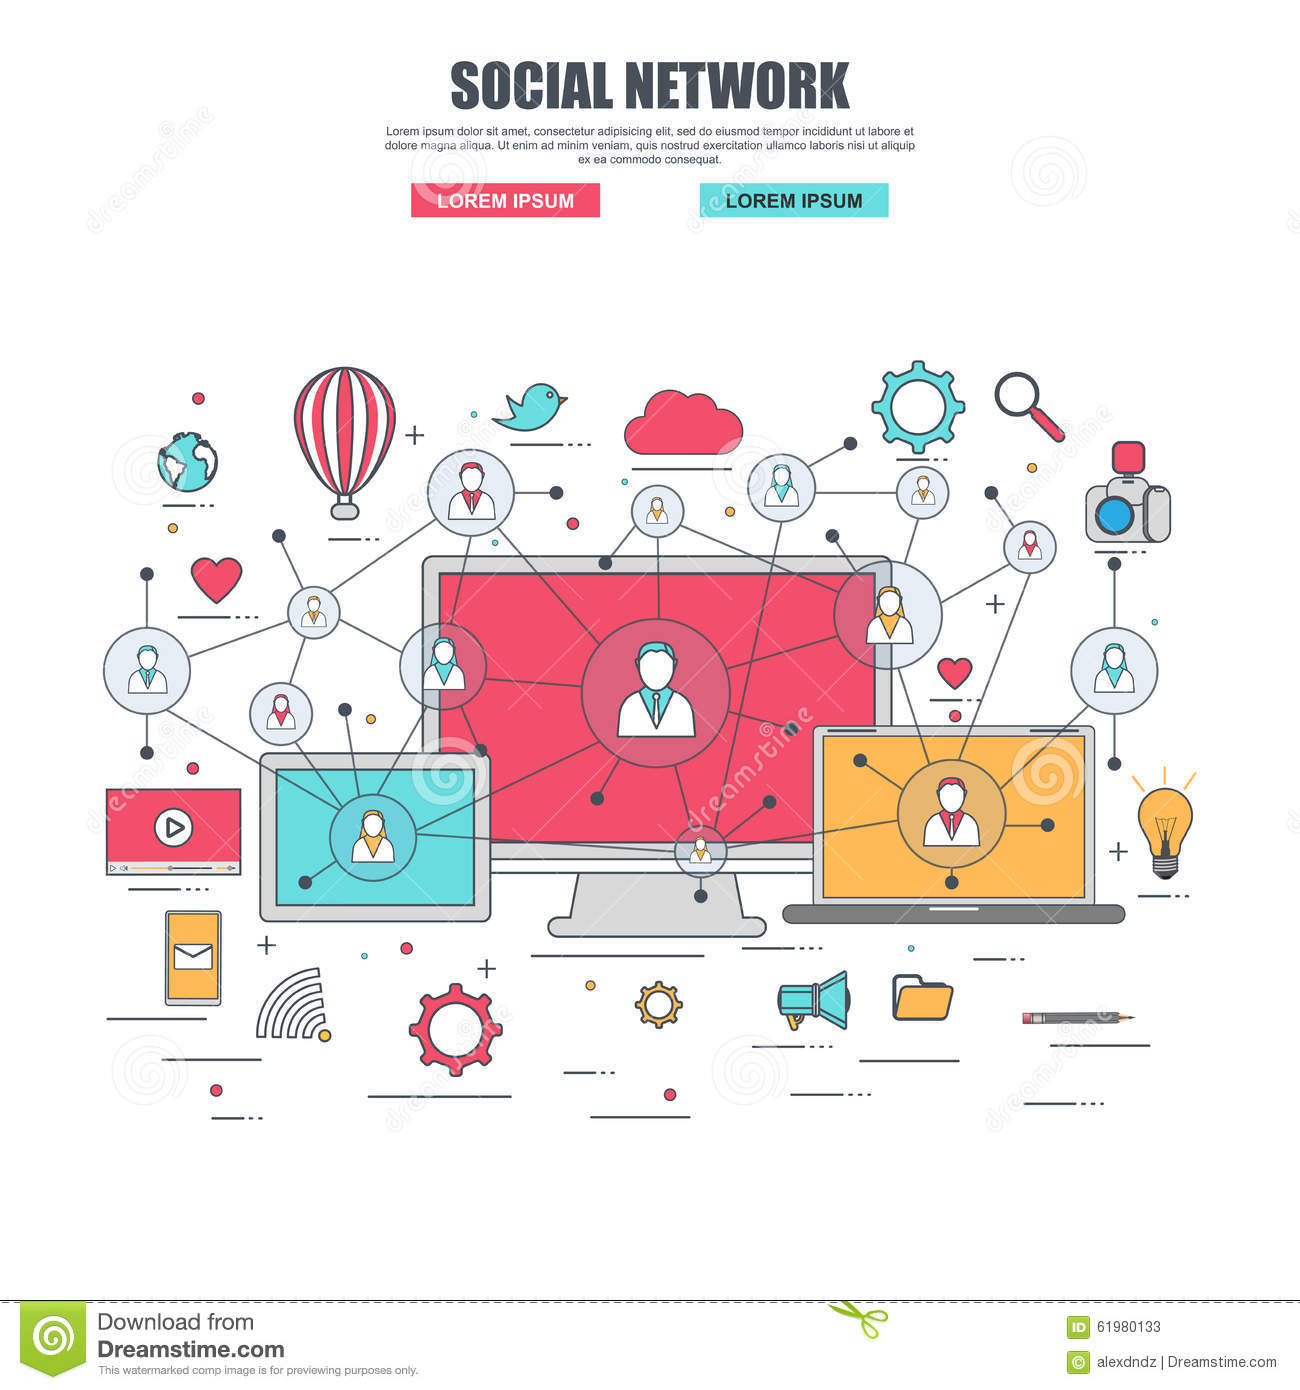 internet social network service Because the internet is easily accessible to anyone, it can be a dangerous place know who you're dealing with or what you're getting into predators, cyber criminals, bullies, and corrupt businesses will try to take advantage of the unwary visitor.